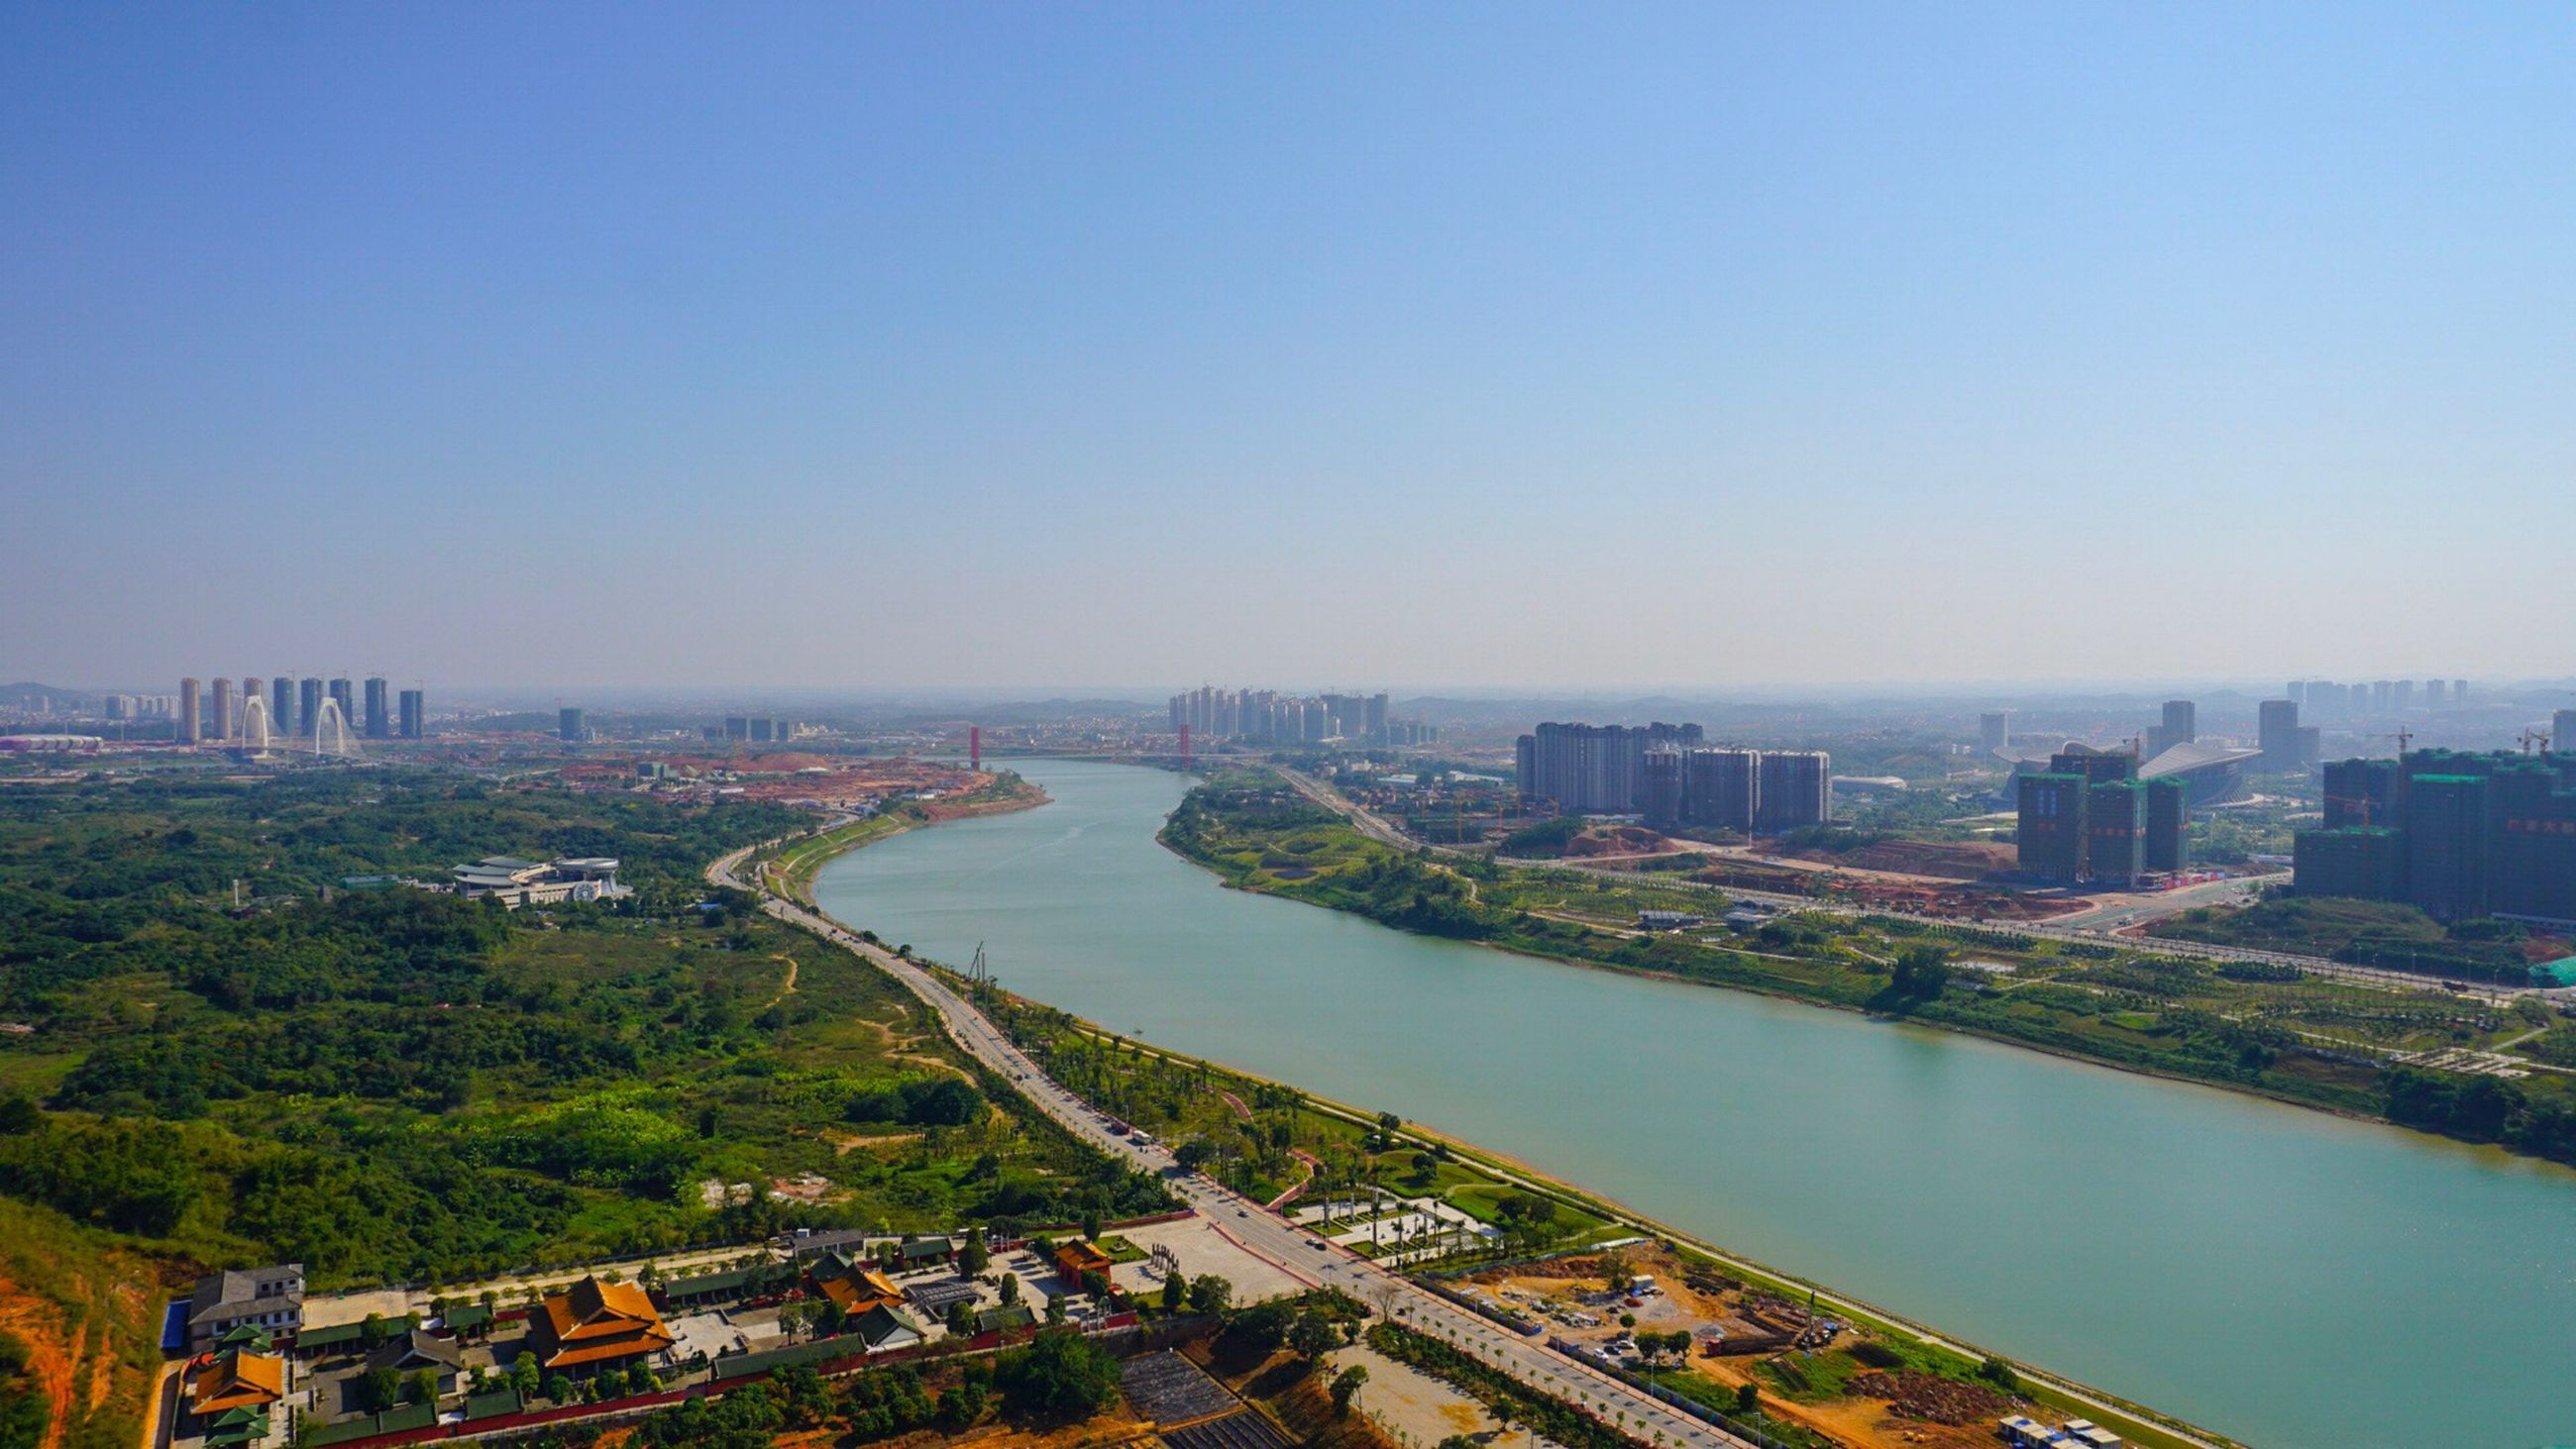 city, cityscape, architecture, high angle view, building exterior, transportation, clear sky, river, travel destinations, built structure, skyscraper, travel, outdoors, modern, urban skyline, city life, aerial view, bridge - man made structure, waterfront, no people, water, growth, nautical vessel, connection, illuminated, tree, sky, day